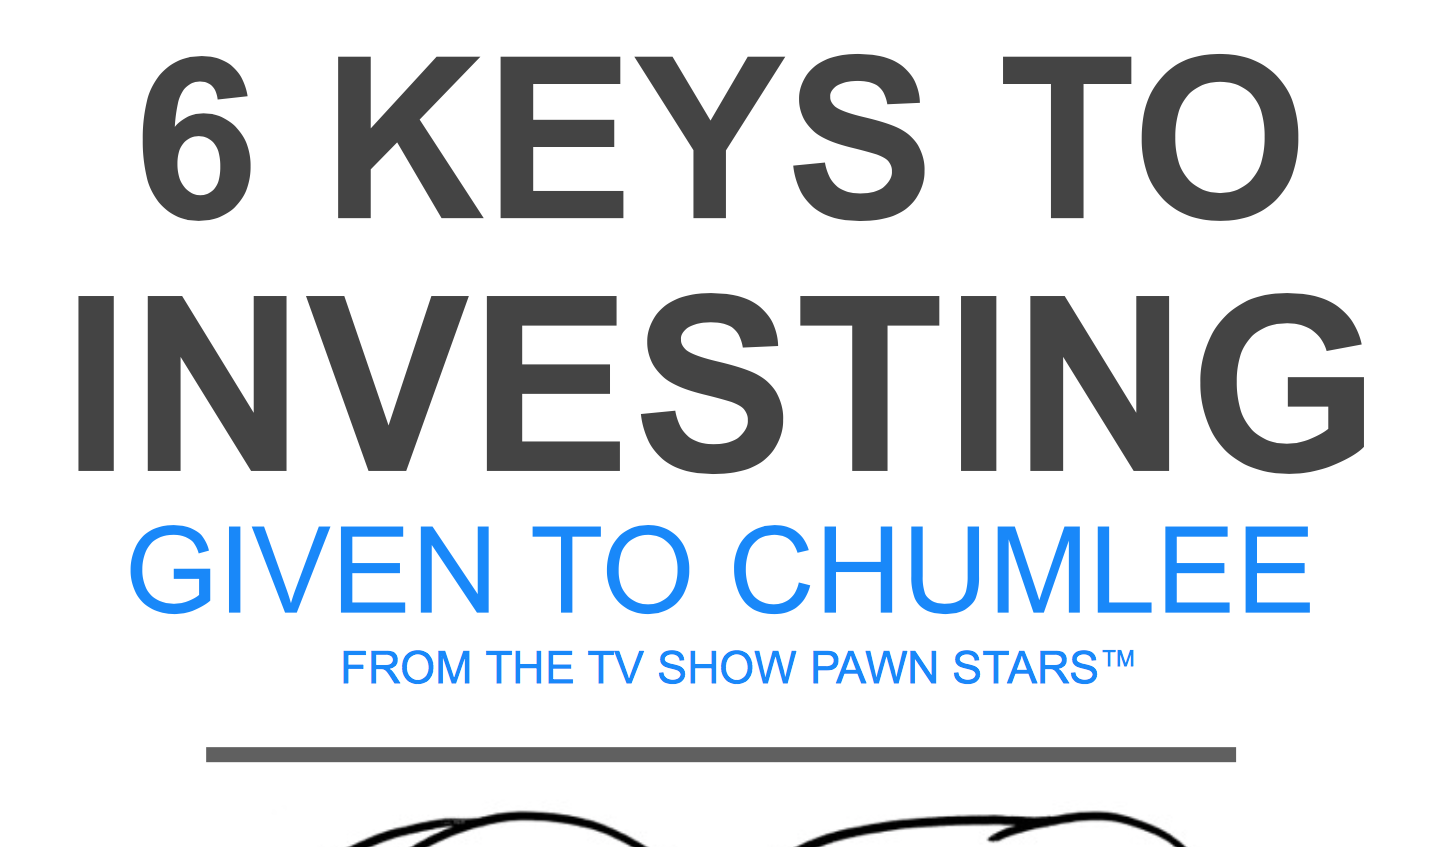 Paul L. Moffat's 6 Keys to Investing Thumbnail